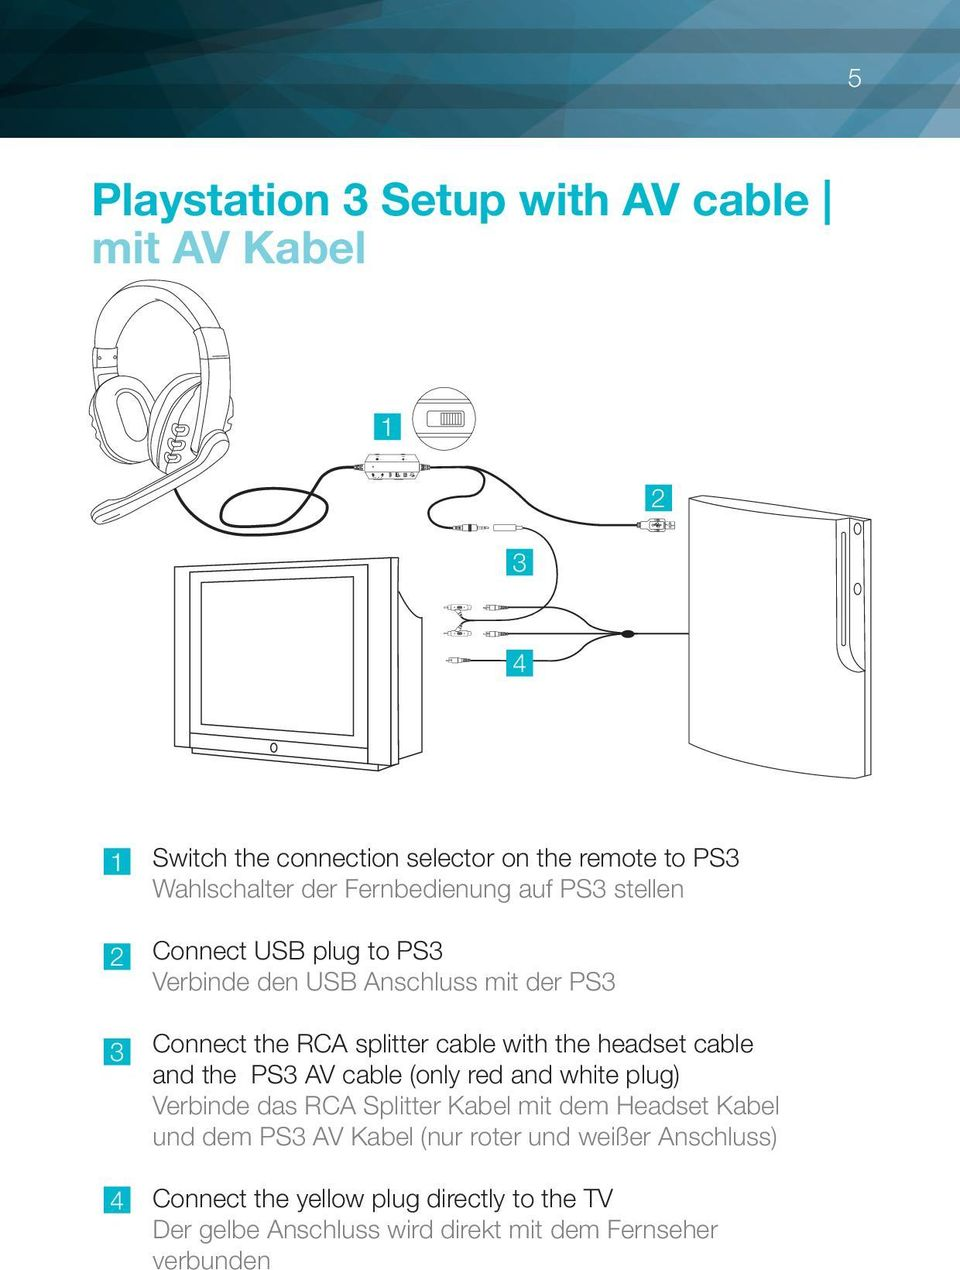 with the headset cable and the PS AV cable (only red and white plug) Verbinde das RCA Splitter Kabel mit dem Headset Kabel und dem PS AV